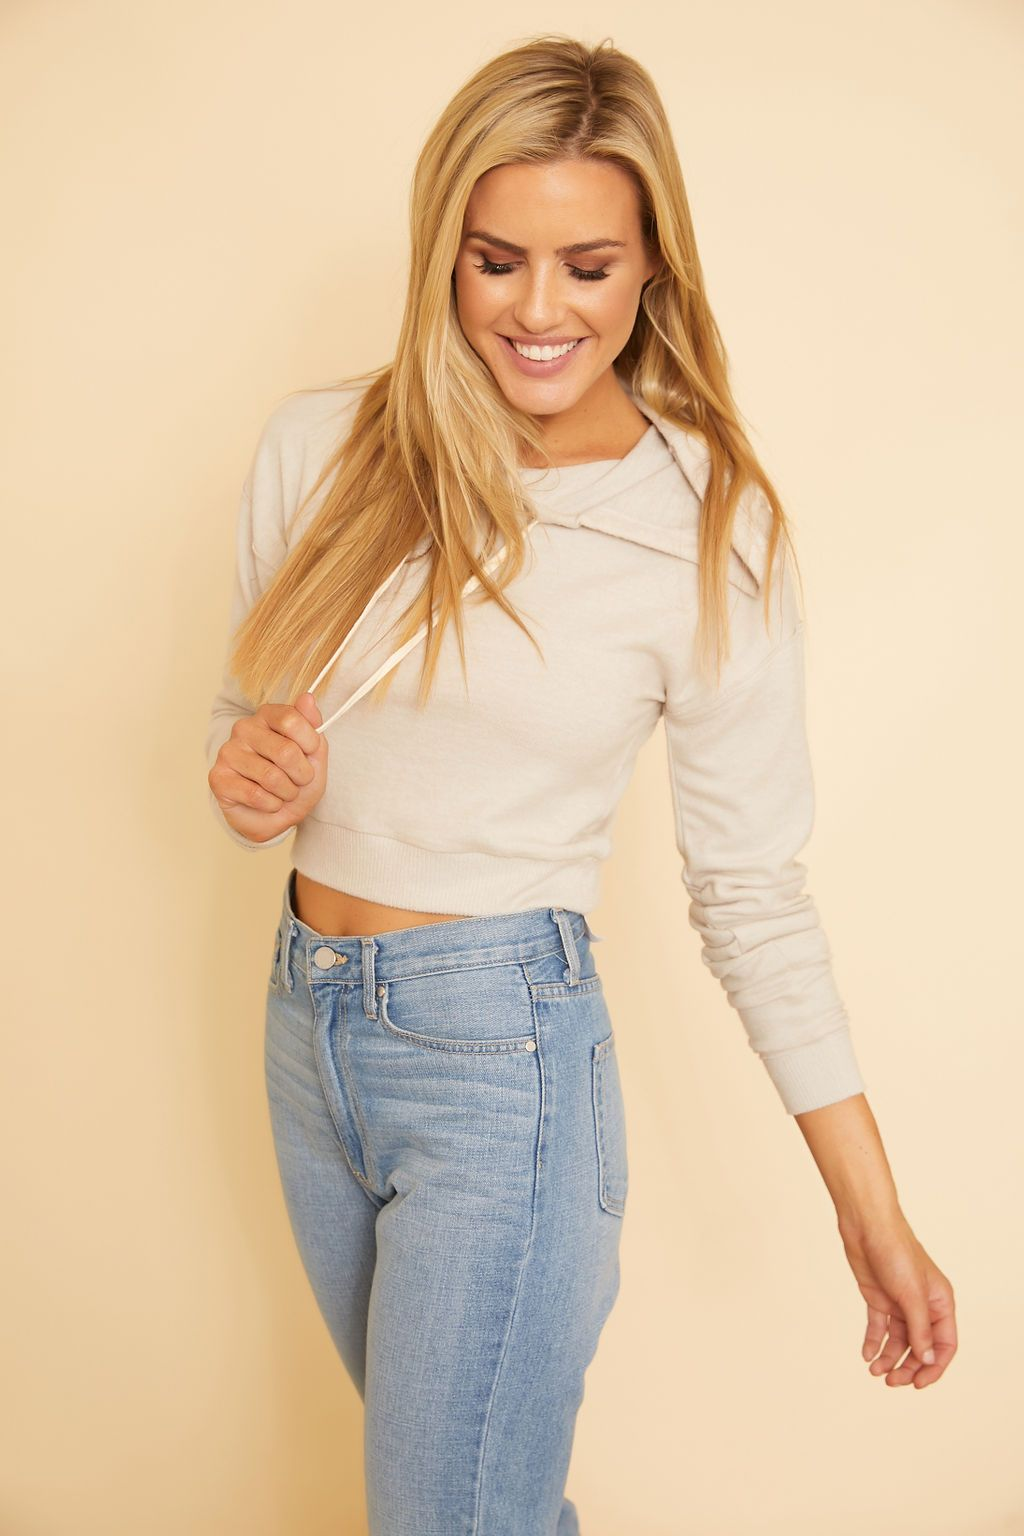 Jada Knit Sweatshirt - wearNYLA